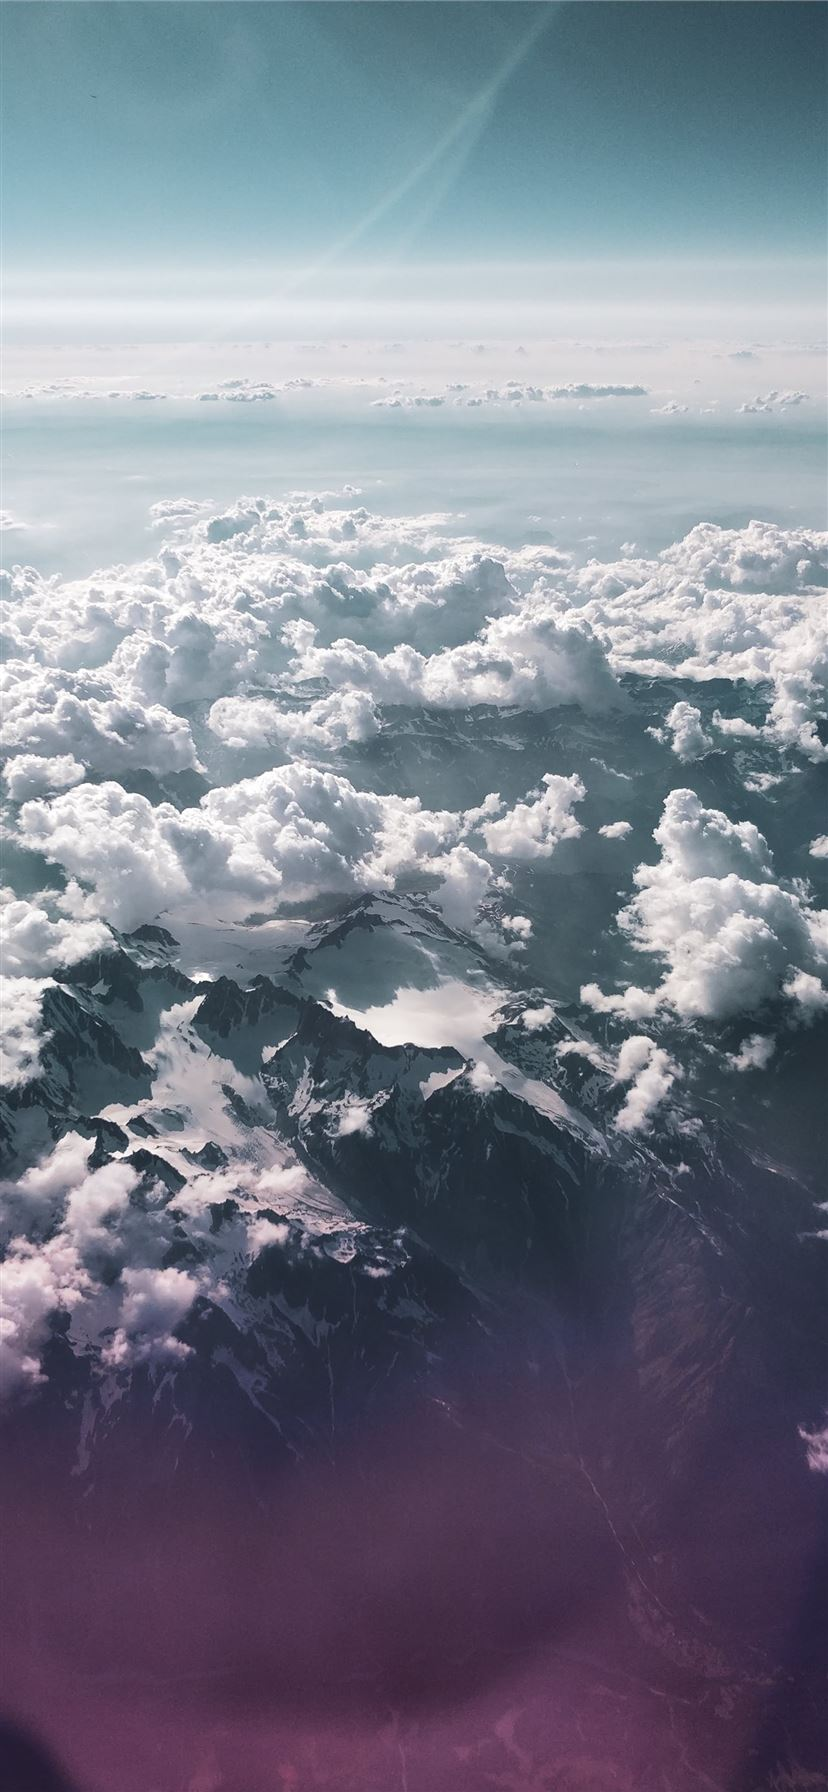 mountain under sea of clouds iPhone 11 wallpaper